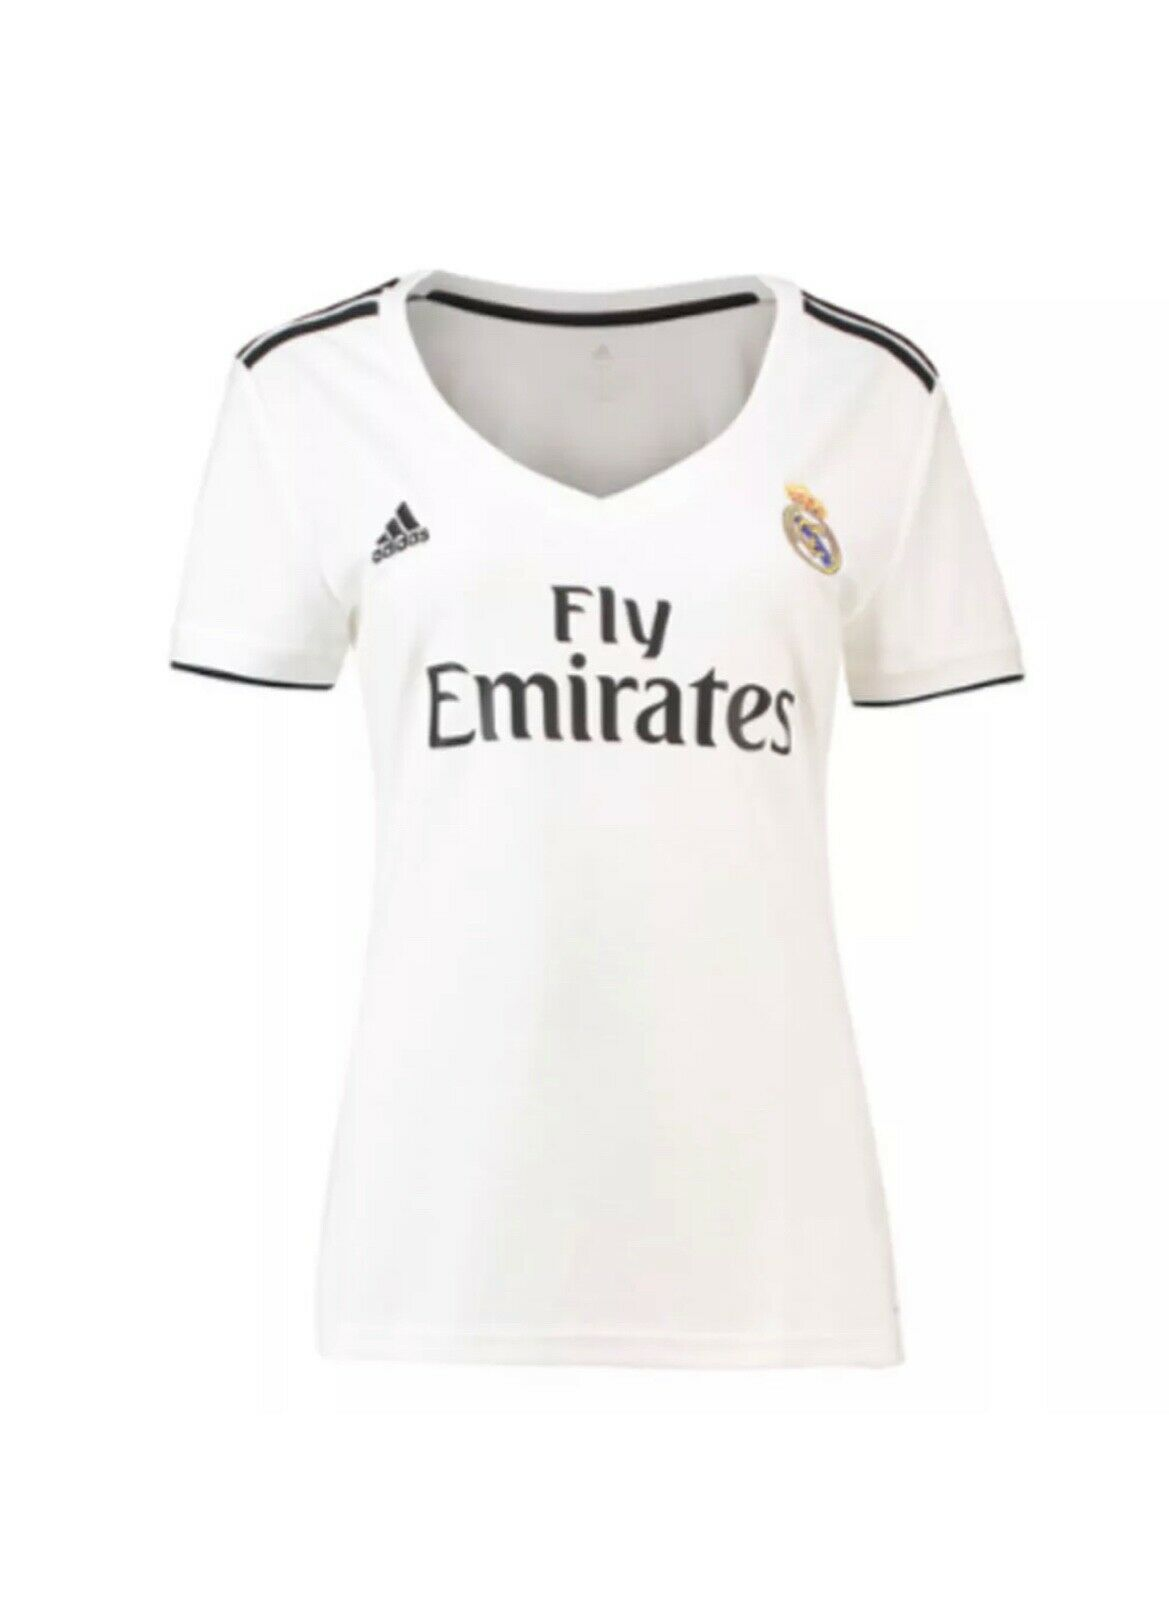 Adidas Real Madrid Wohombres Home Jersey 18 19 Zoom muestran Colors originales Whit